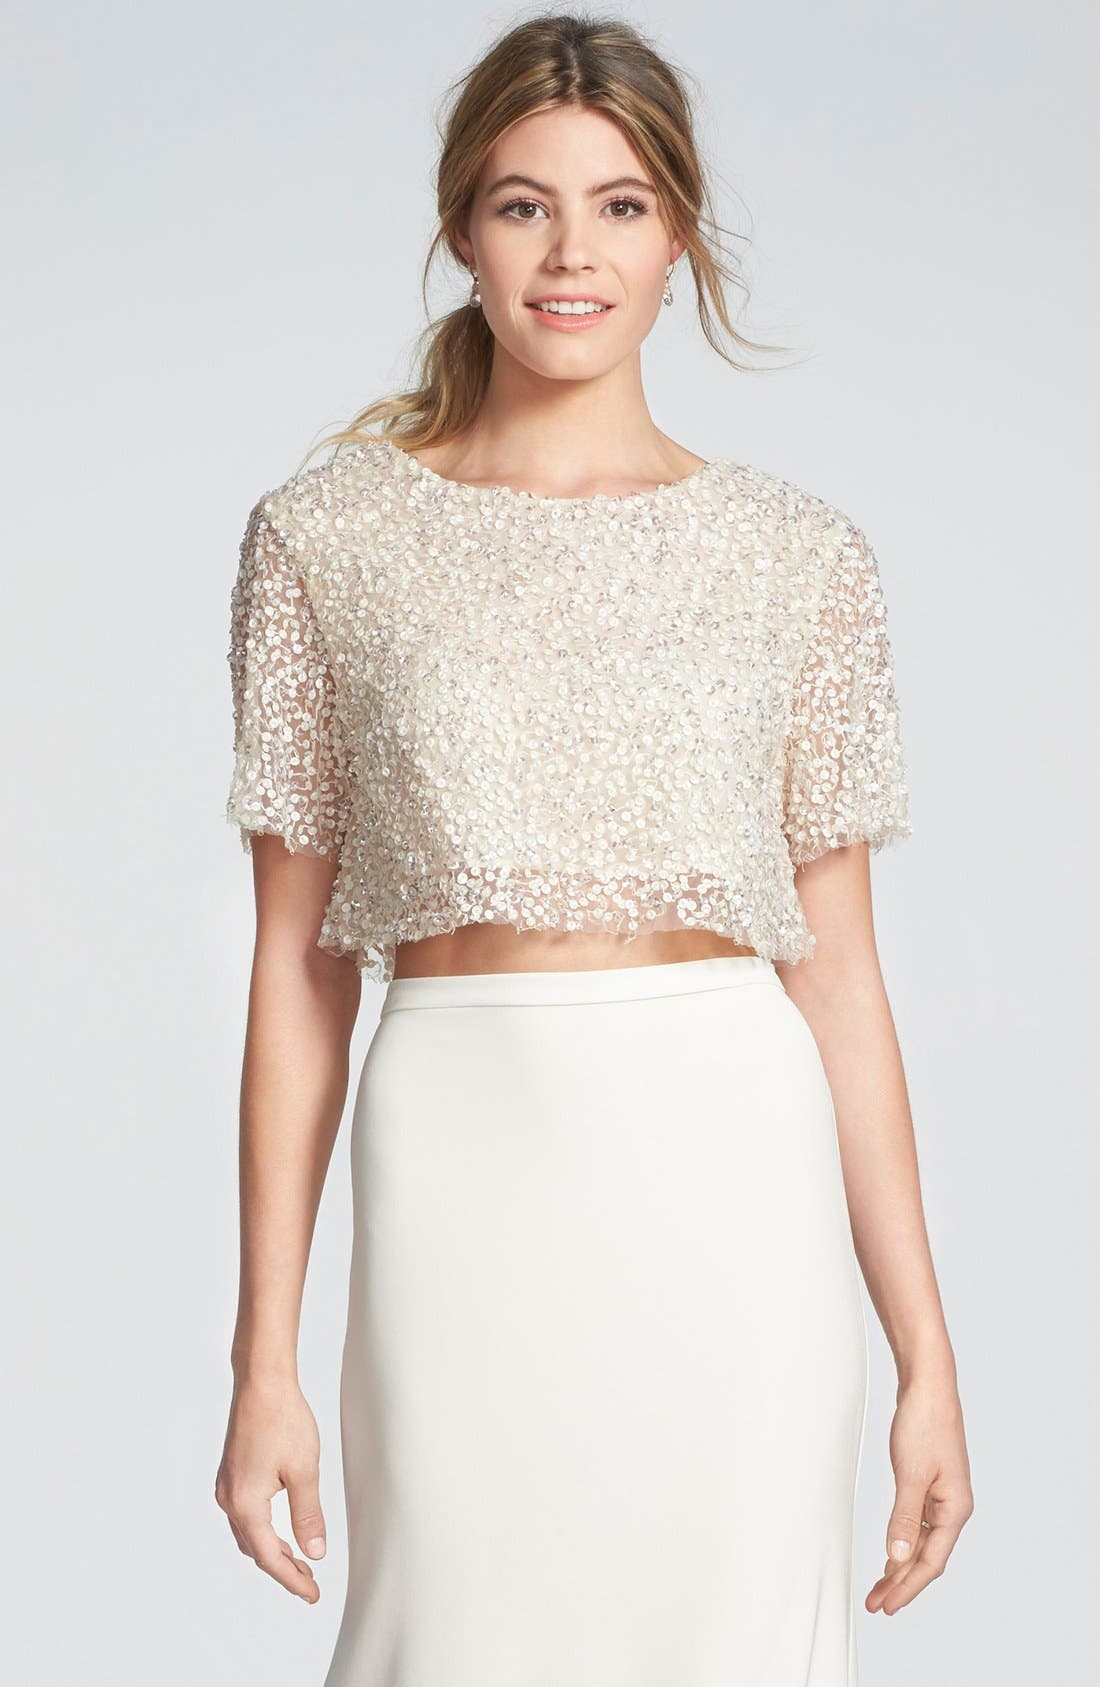 Sarah Seven 'Delancy' Sequin Crop Top